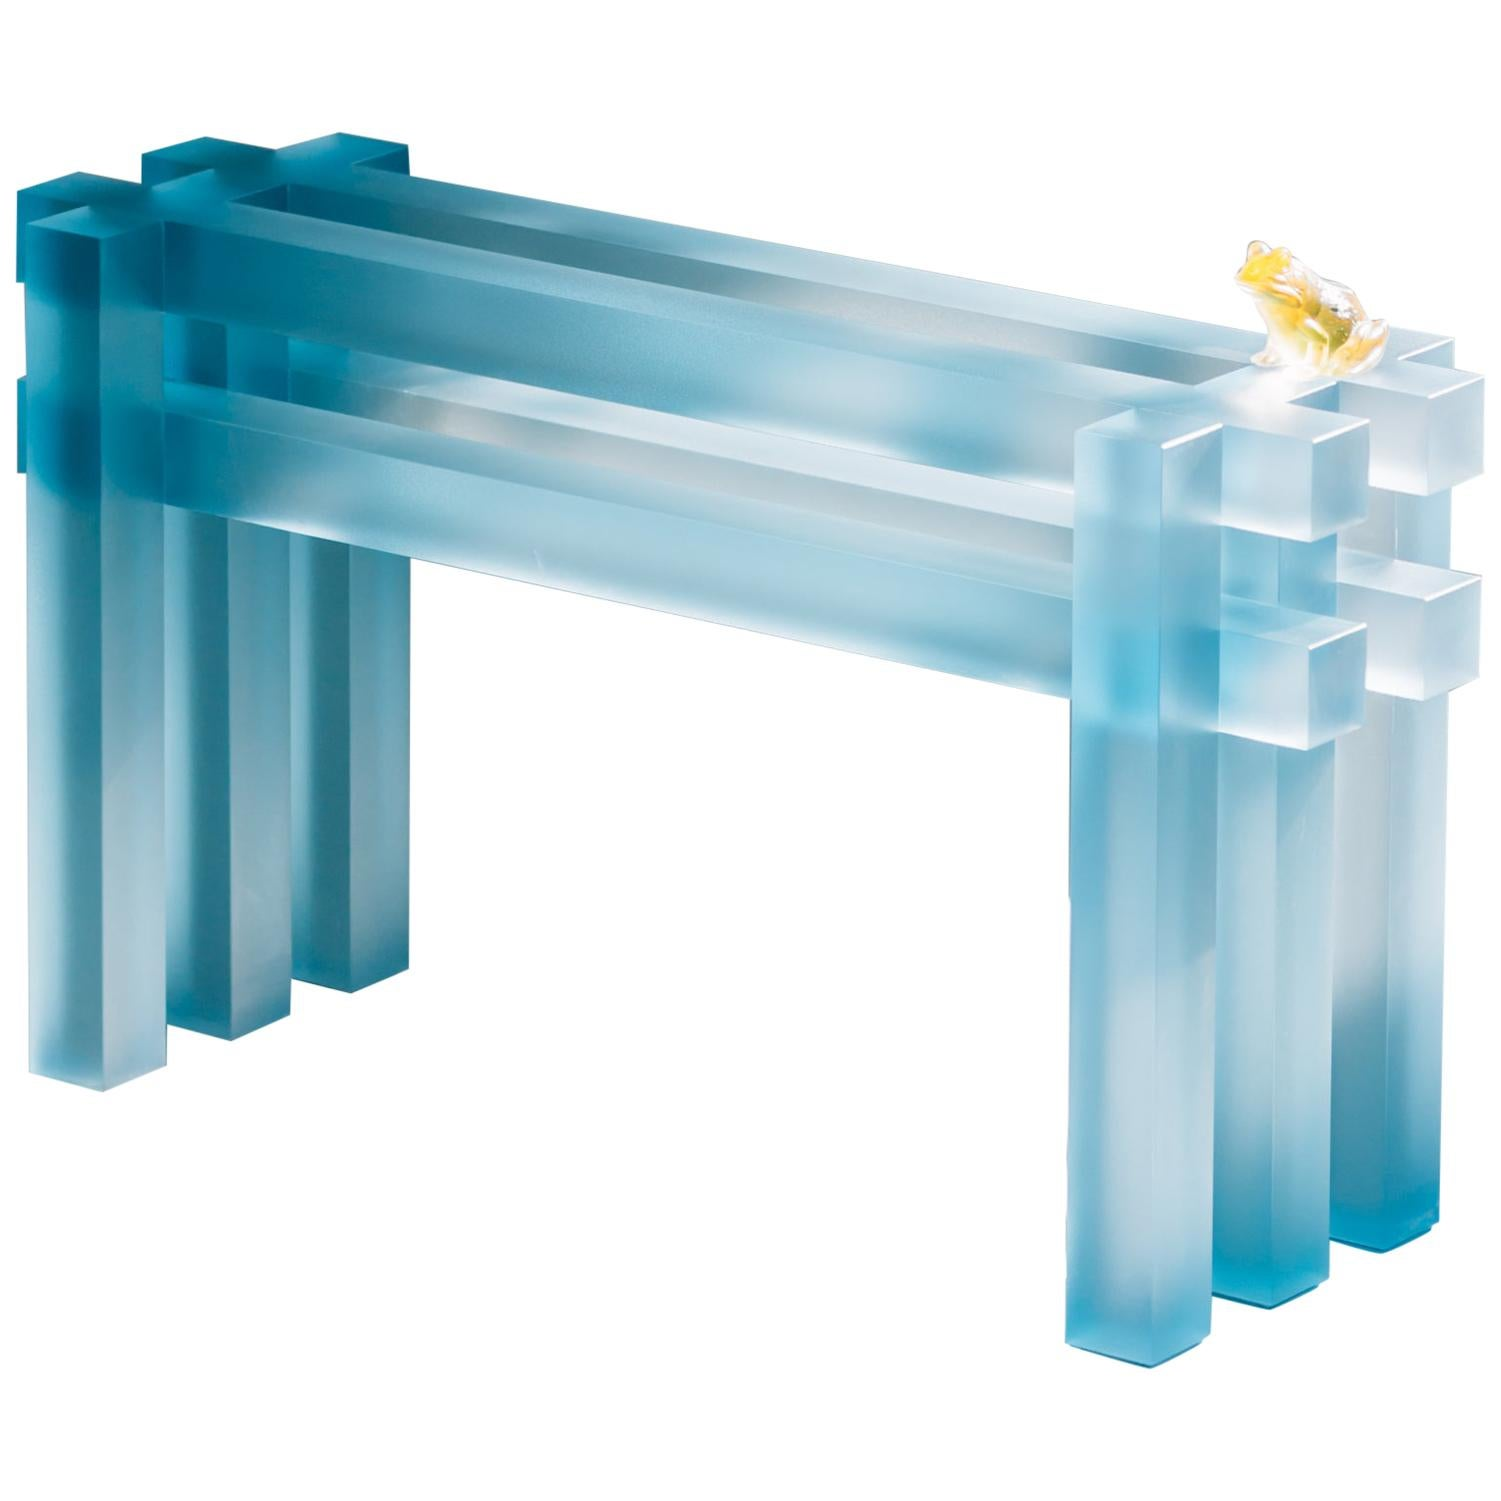 Frosted Blue Short Bench by Laurids Gallée